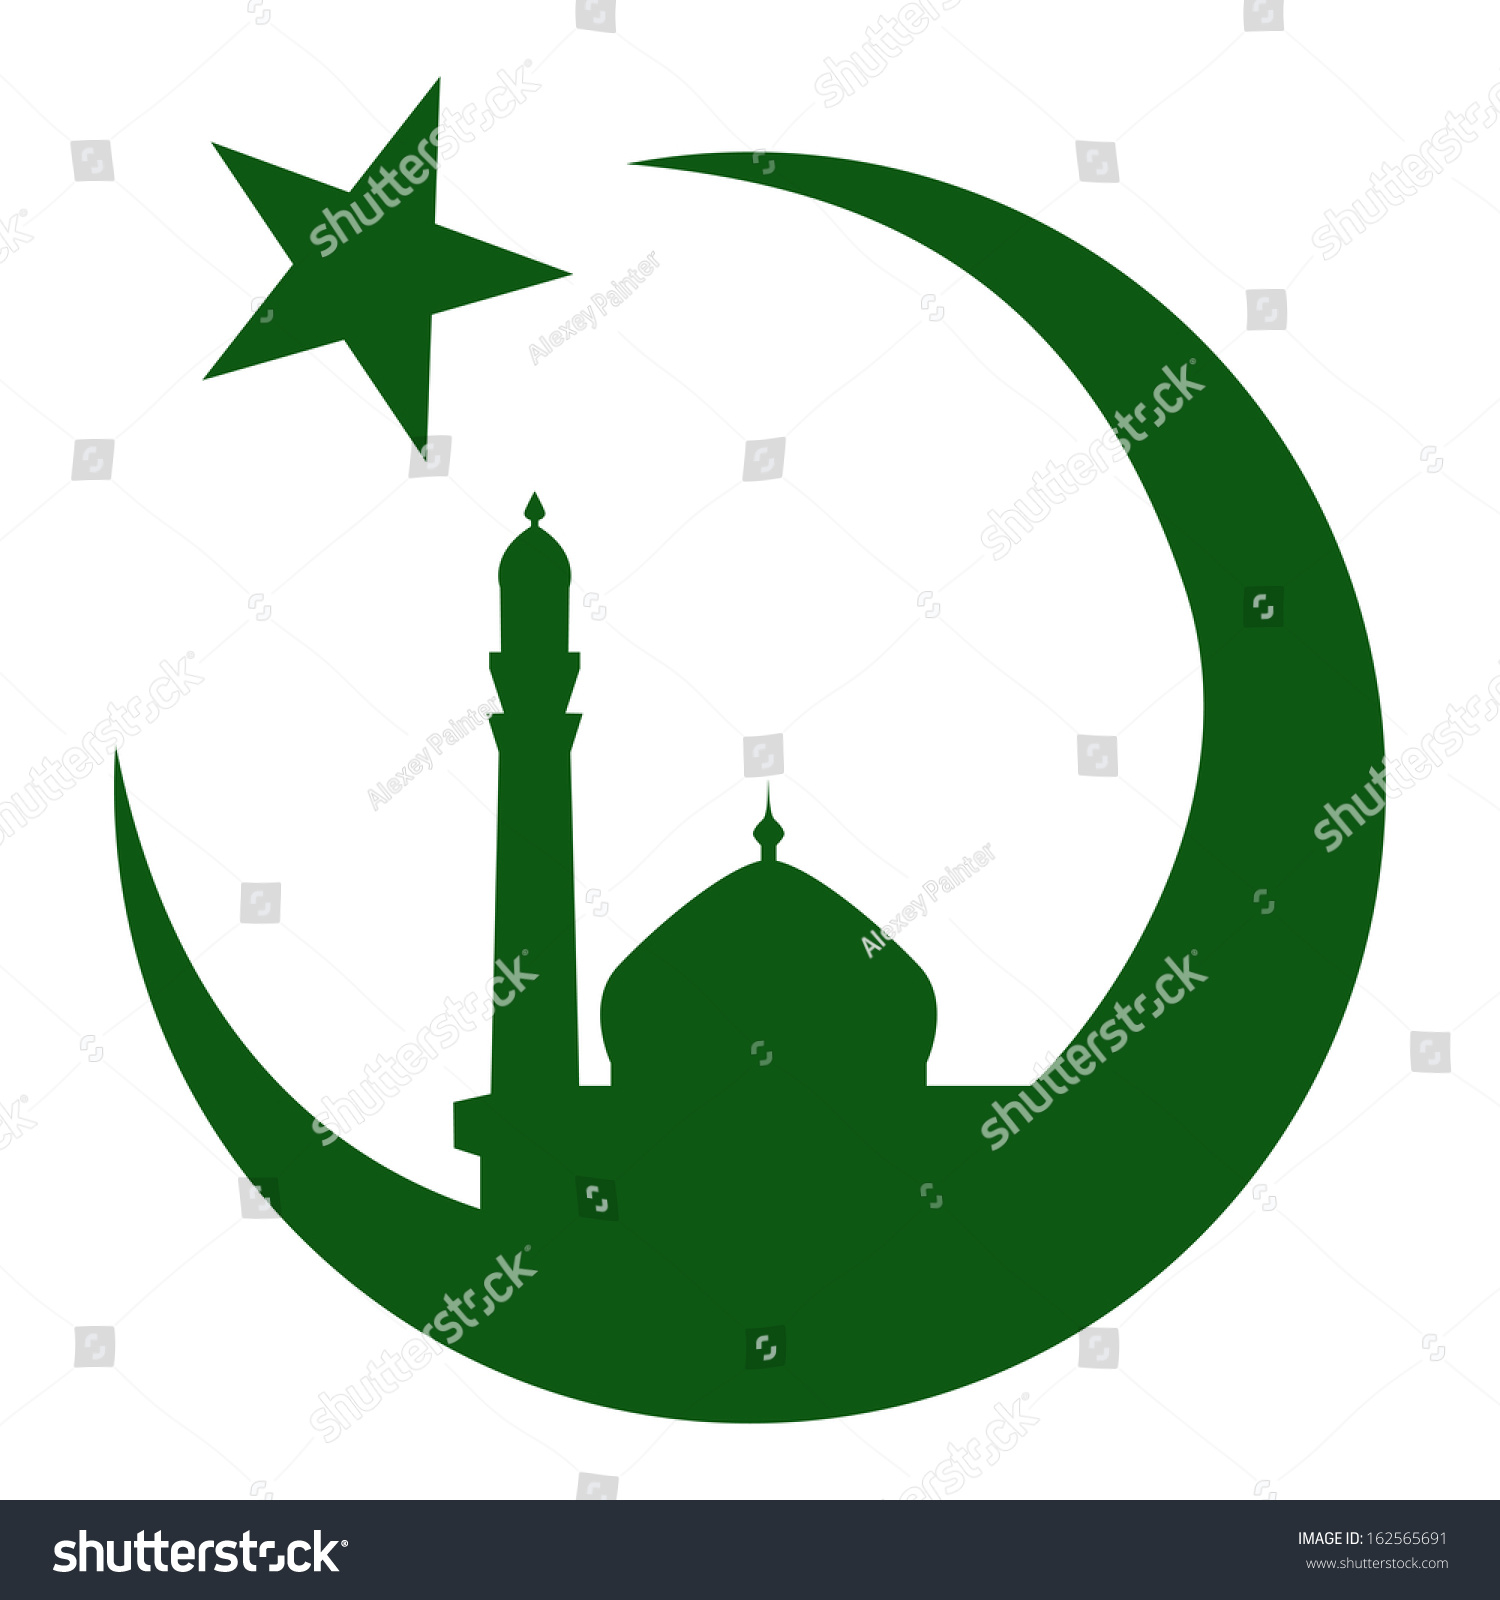 Image result for symbol of islam